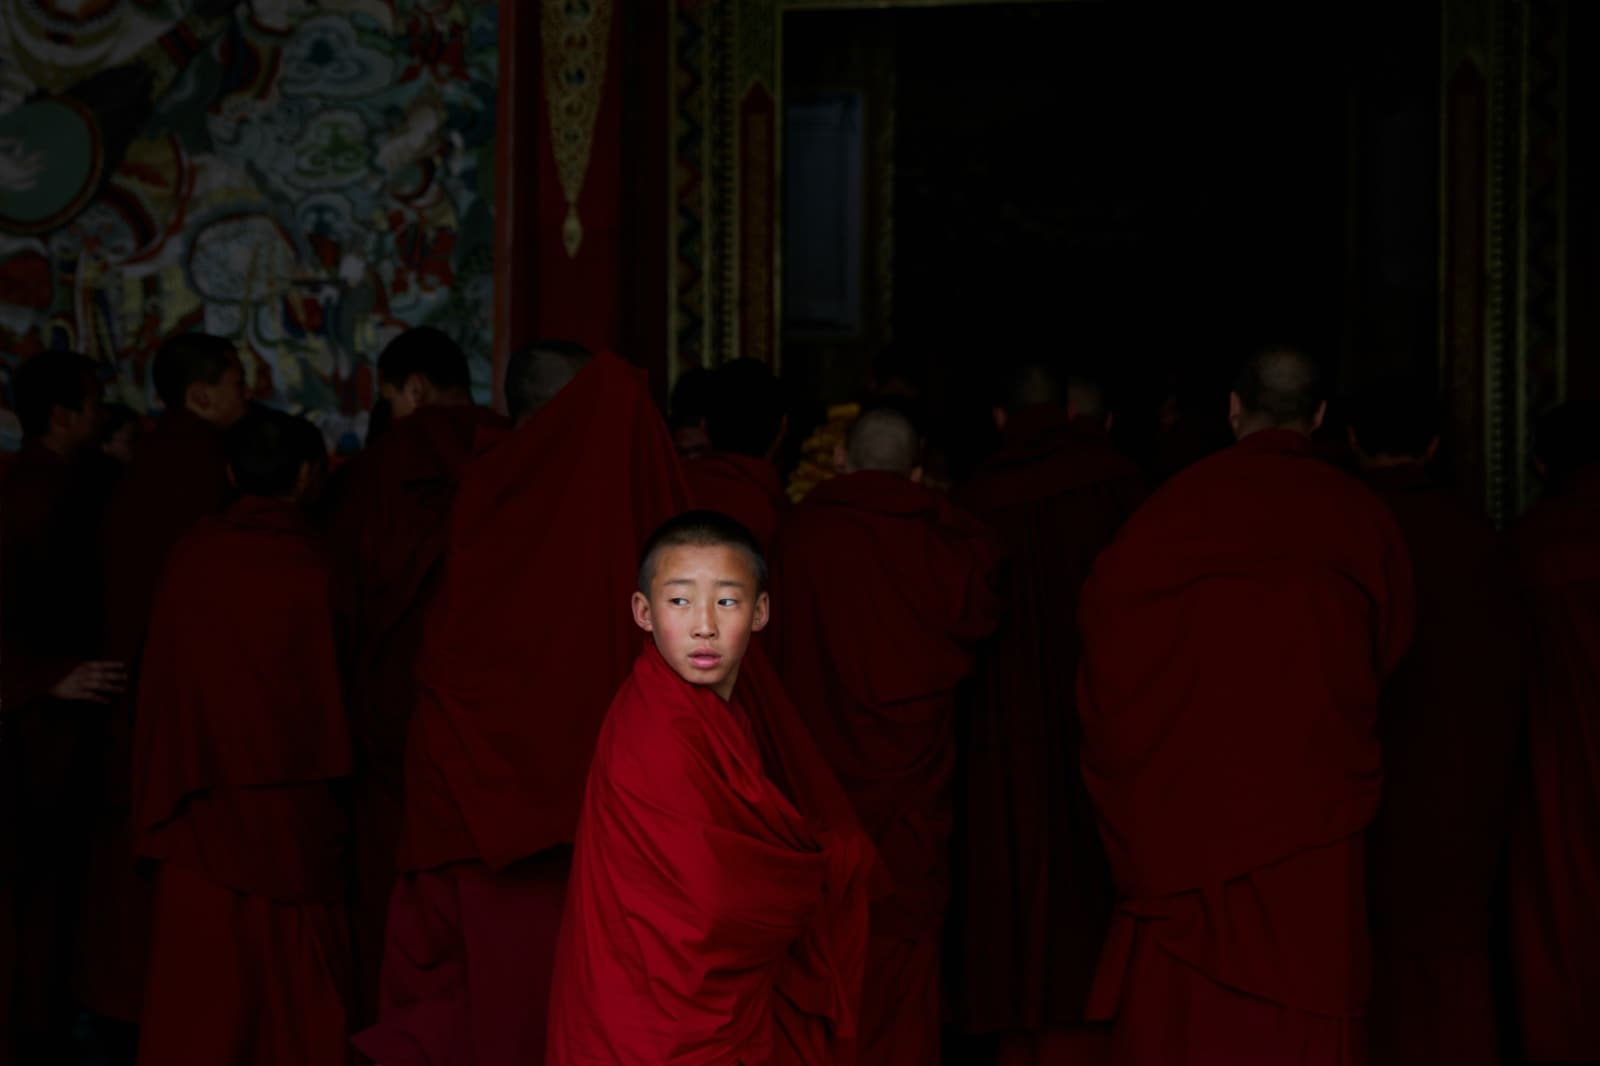 Buddhist monks enter a prayer hall at Rongwo Monastery in the largely ethnic Tibetan town of Rebkong, Qinghai province, China March 9, 2019. REUTERS/Thomas Peter